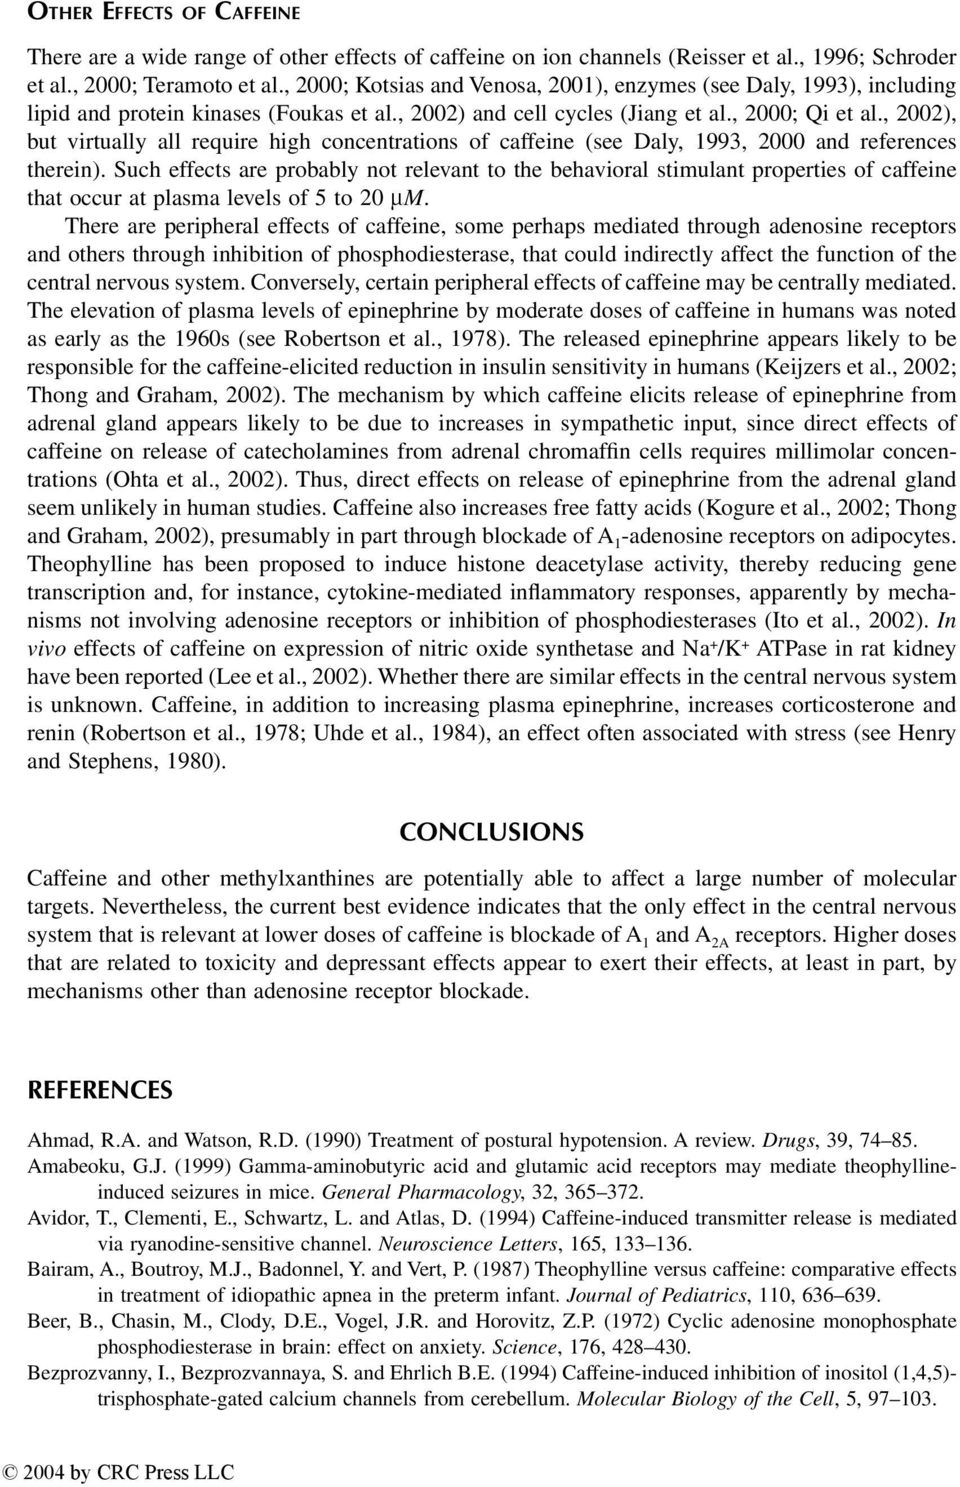 , 2002), but virtually all require high concentrations of caffeine (see Daly, 1993, 2000 and references therein).